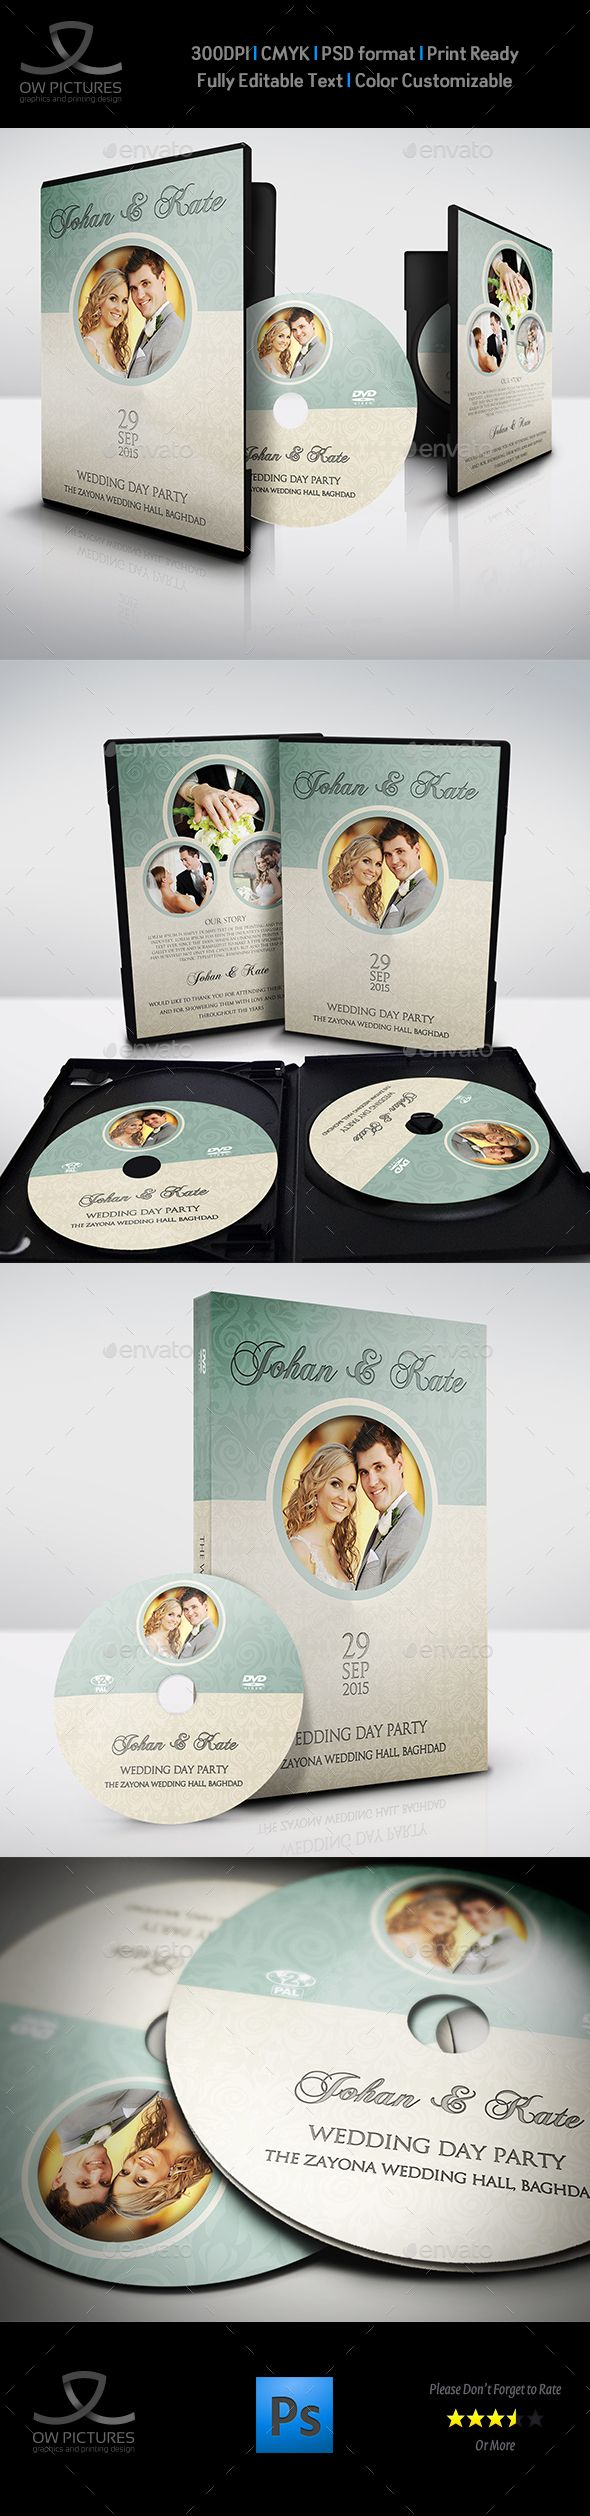 Wedding DVD Cover and DVD Label Design Template Vol.8 - CD & DVD Artwork Print Template PSD. Download here: https://graphicriver.net/item/wedding-dvd-cover-and-dvd-label-template-vol8/17681263?ref=yinkira